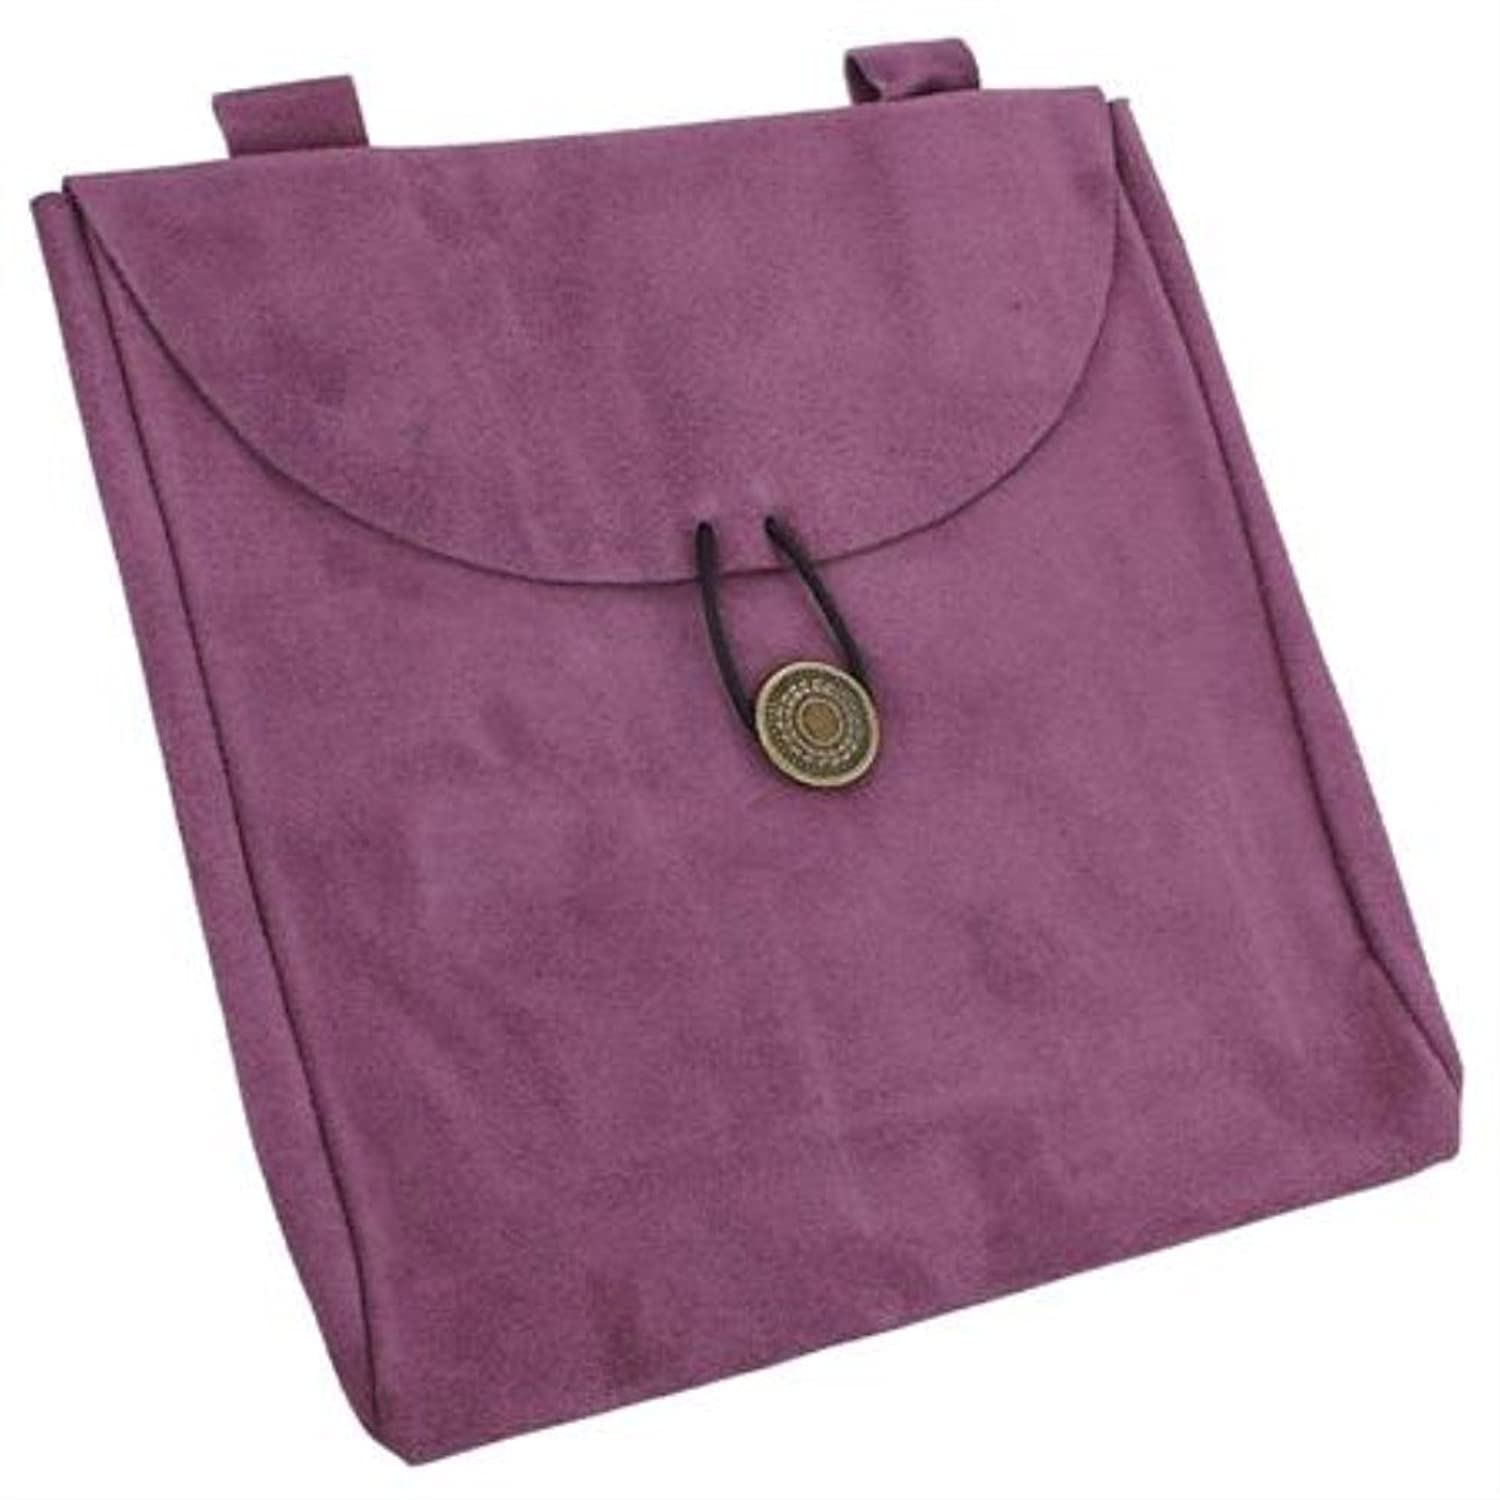 Deluxe Adult Costumes - Medieval Renaissance large lavender shade lavender suede leather belt pouch